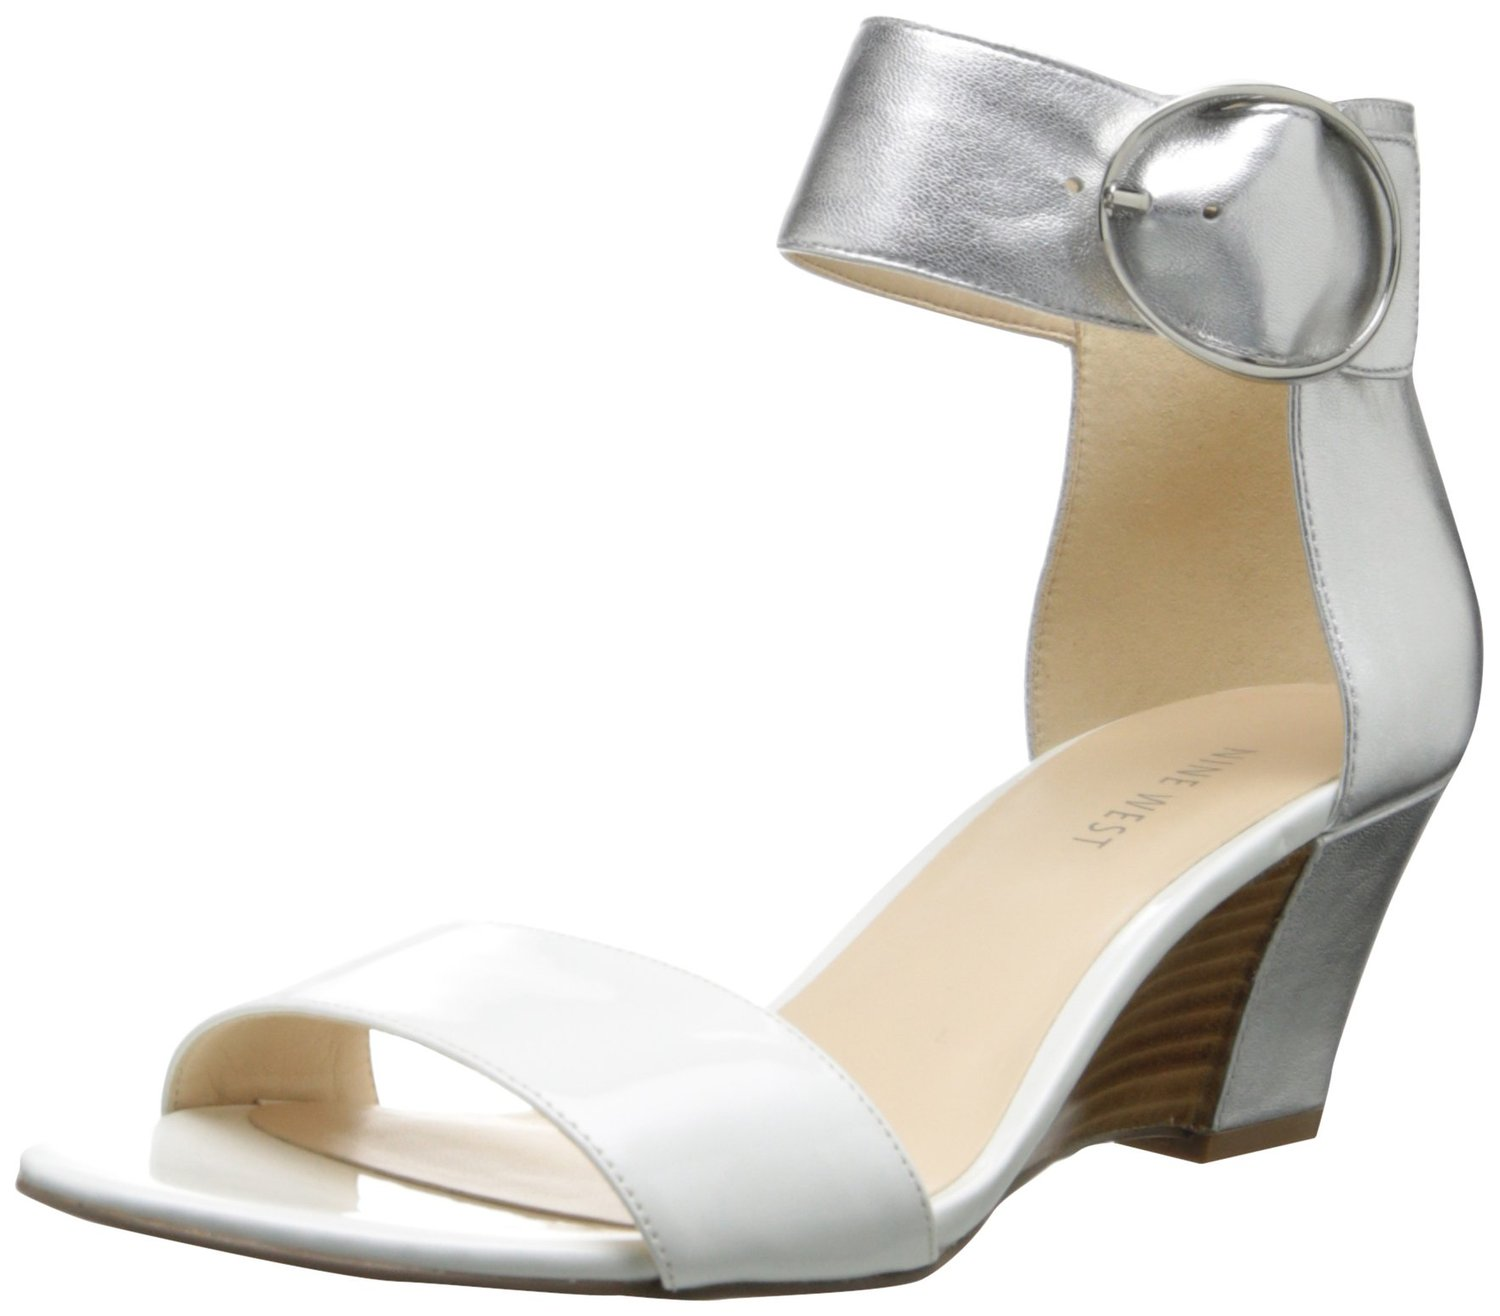 97495b5d7b5 Nine West Ventana Wedge Sandal WhiteSilver